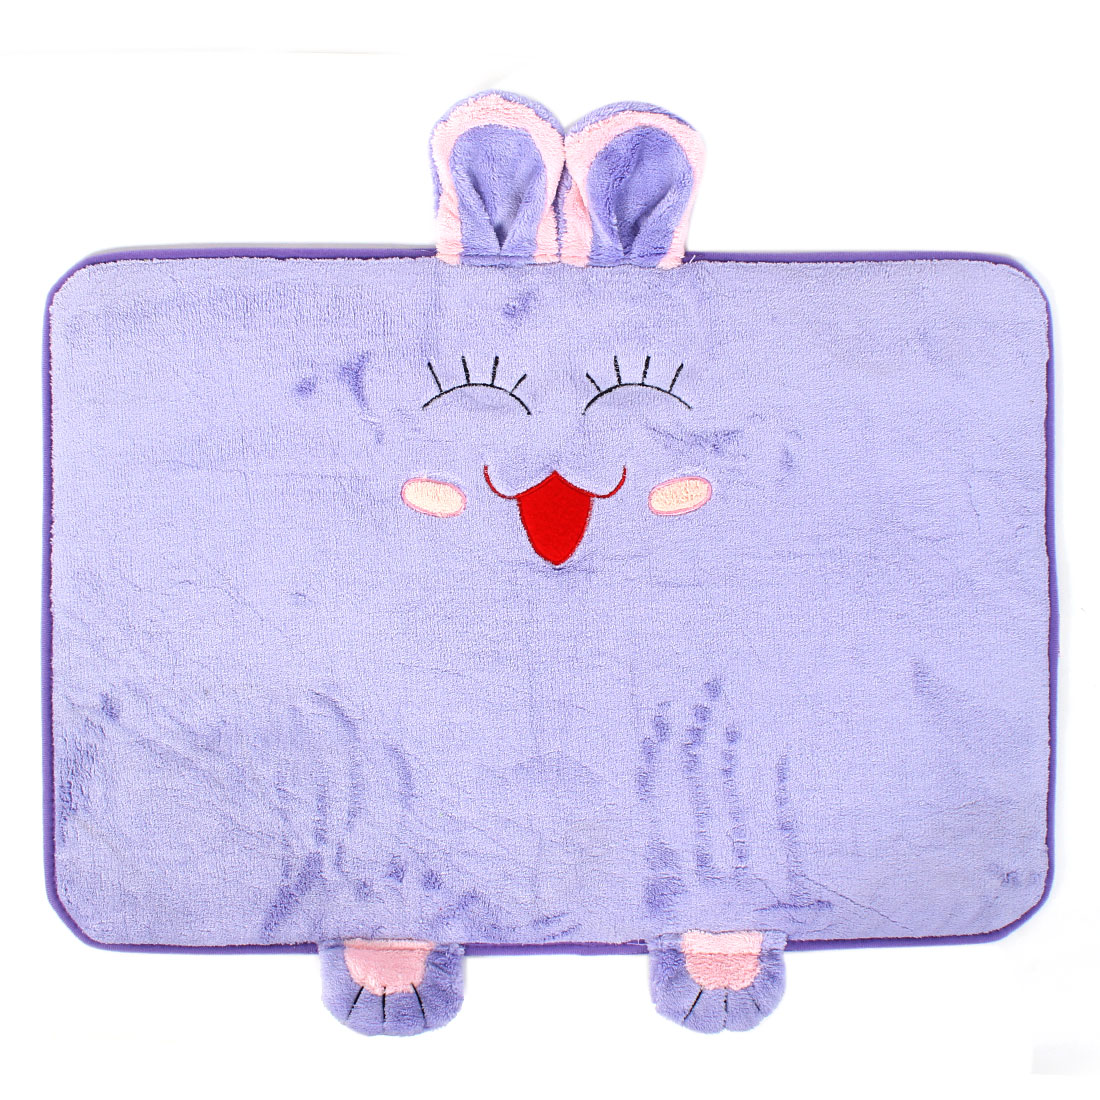 Bedroom Rabbit Pattern Floor Mat Area Rug Carpet 60cm x 40cm Purple